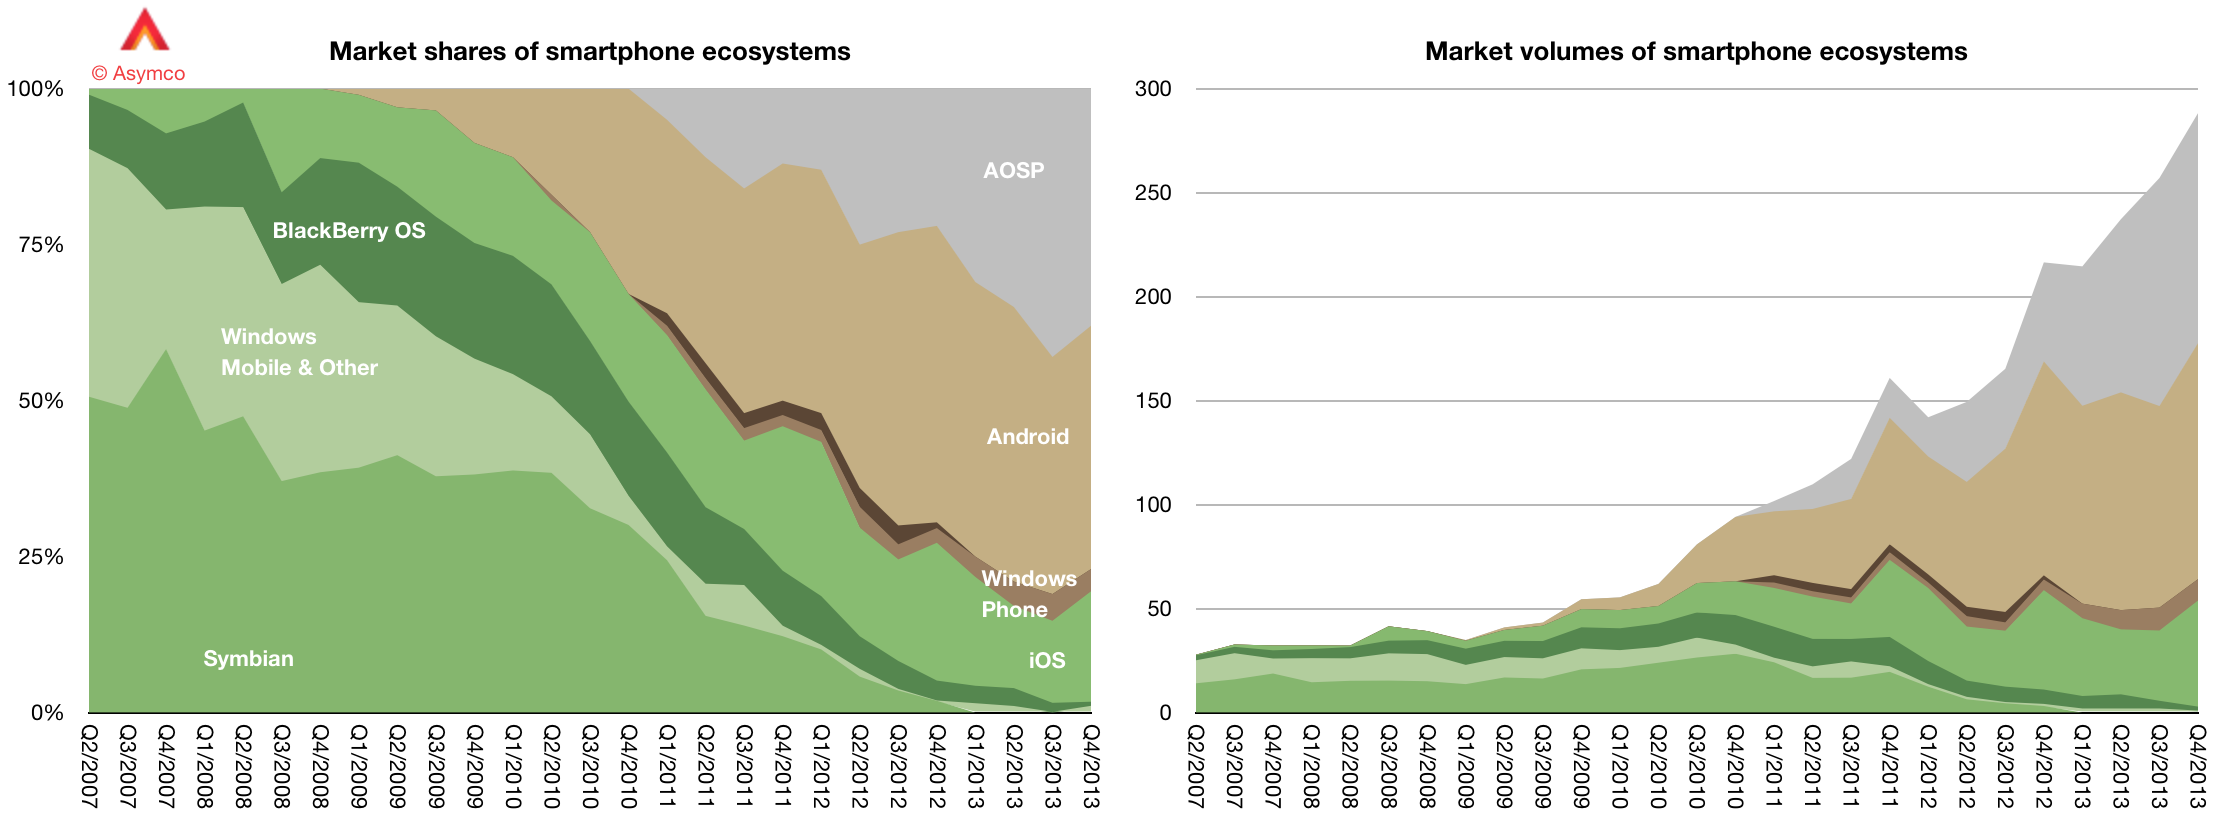 Power imbalance again - AOSPs taking more share than Android